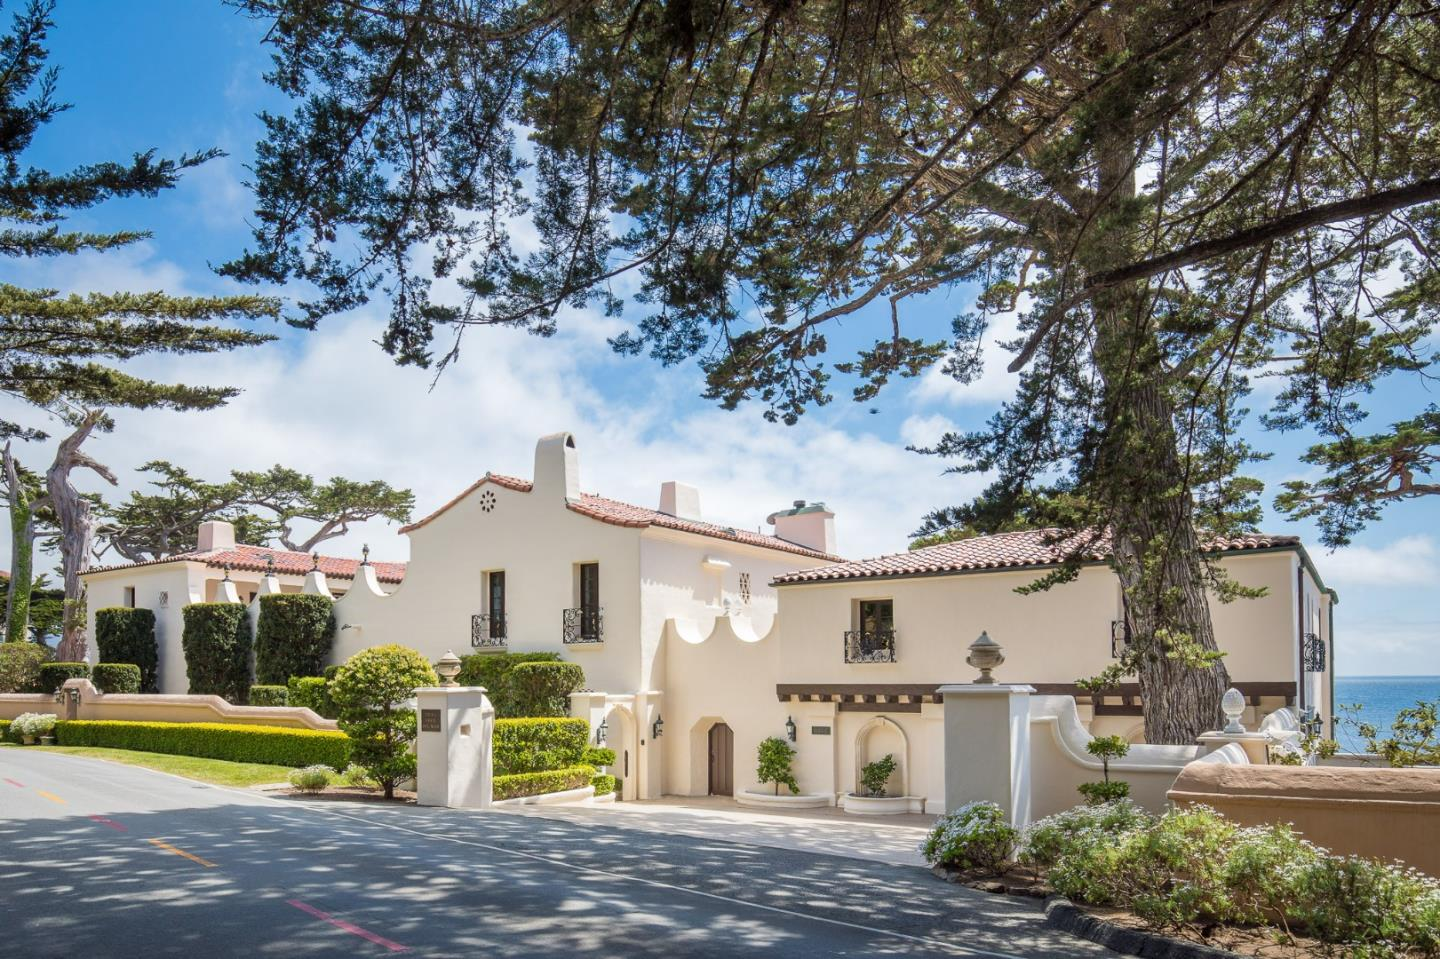 3256 17 Mile Drive Pebble Beach, California 93953, 9 Bedrooms Bedrooms, ,8 BathroomsBathrooms,Residential,For Sale,3256 17 Mile Drive,ML81698907